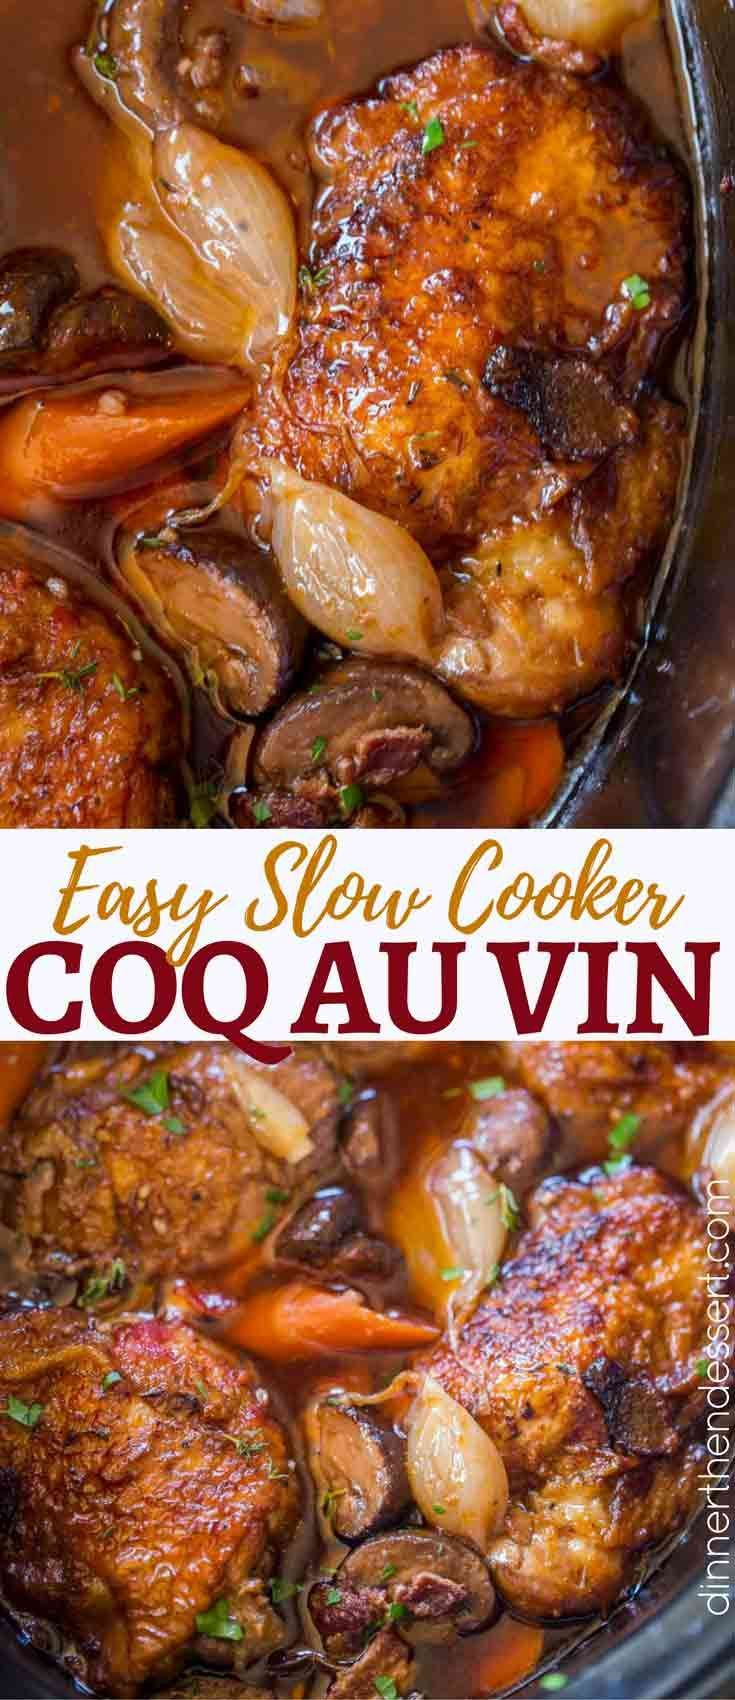 38cde80c5544 Slow Cooker Coq Au Vin has all the red wine braised chicken flavors with  shallots